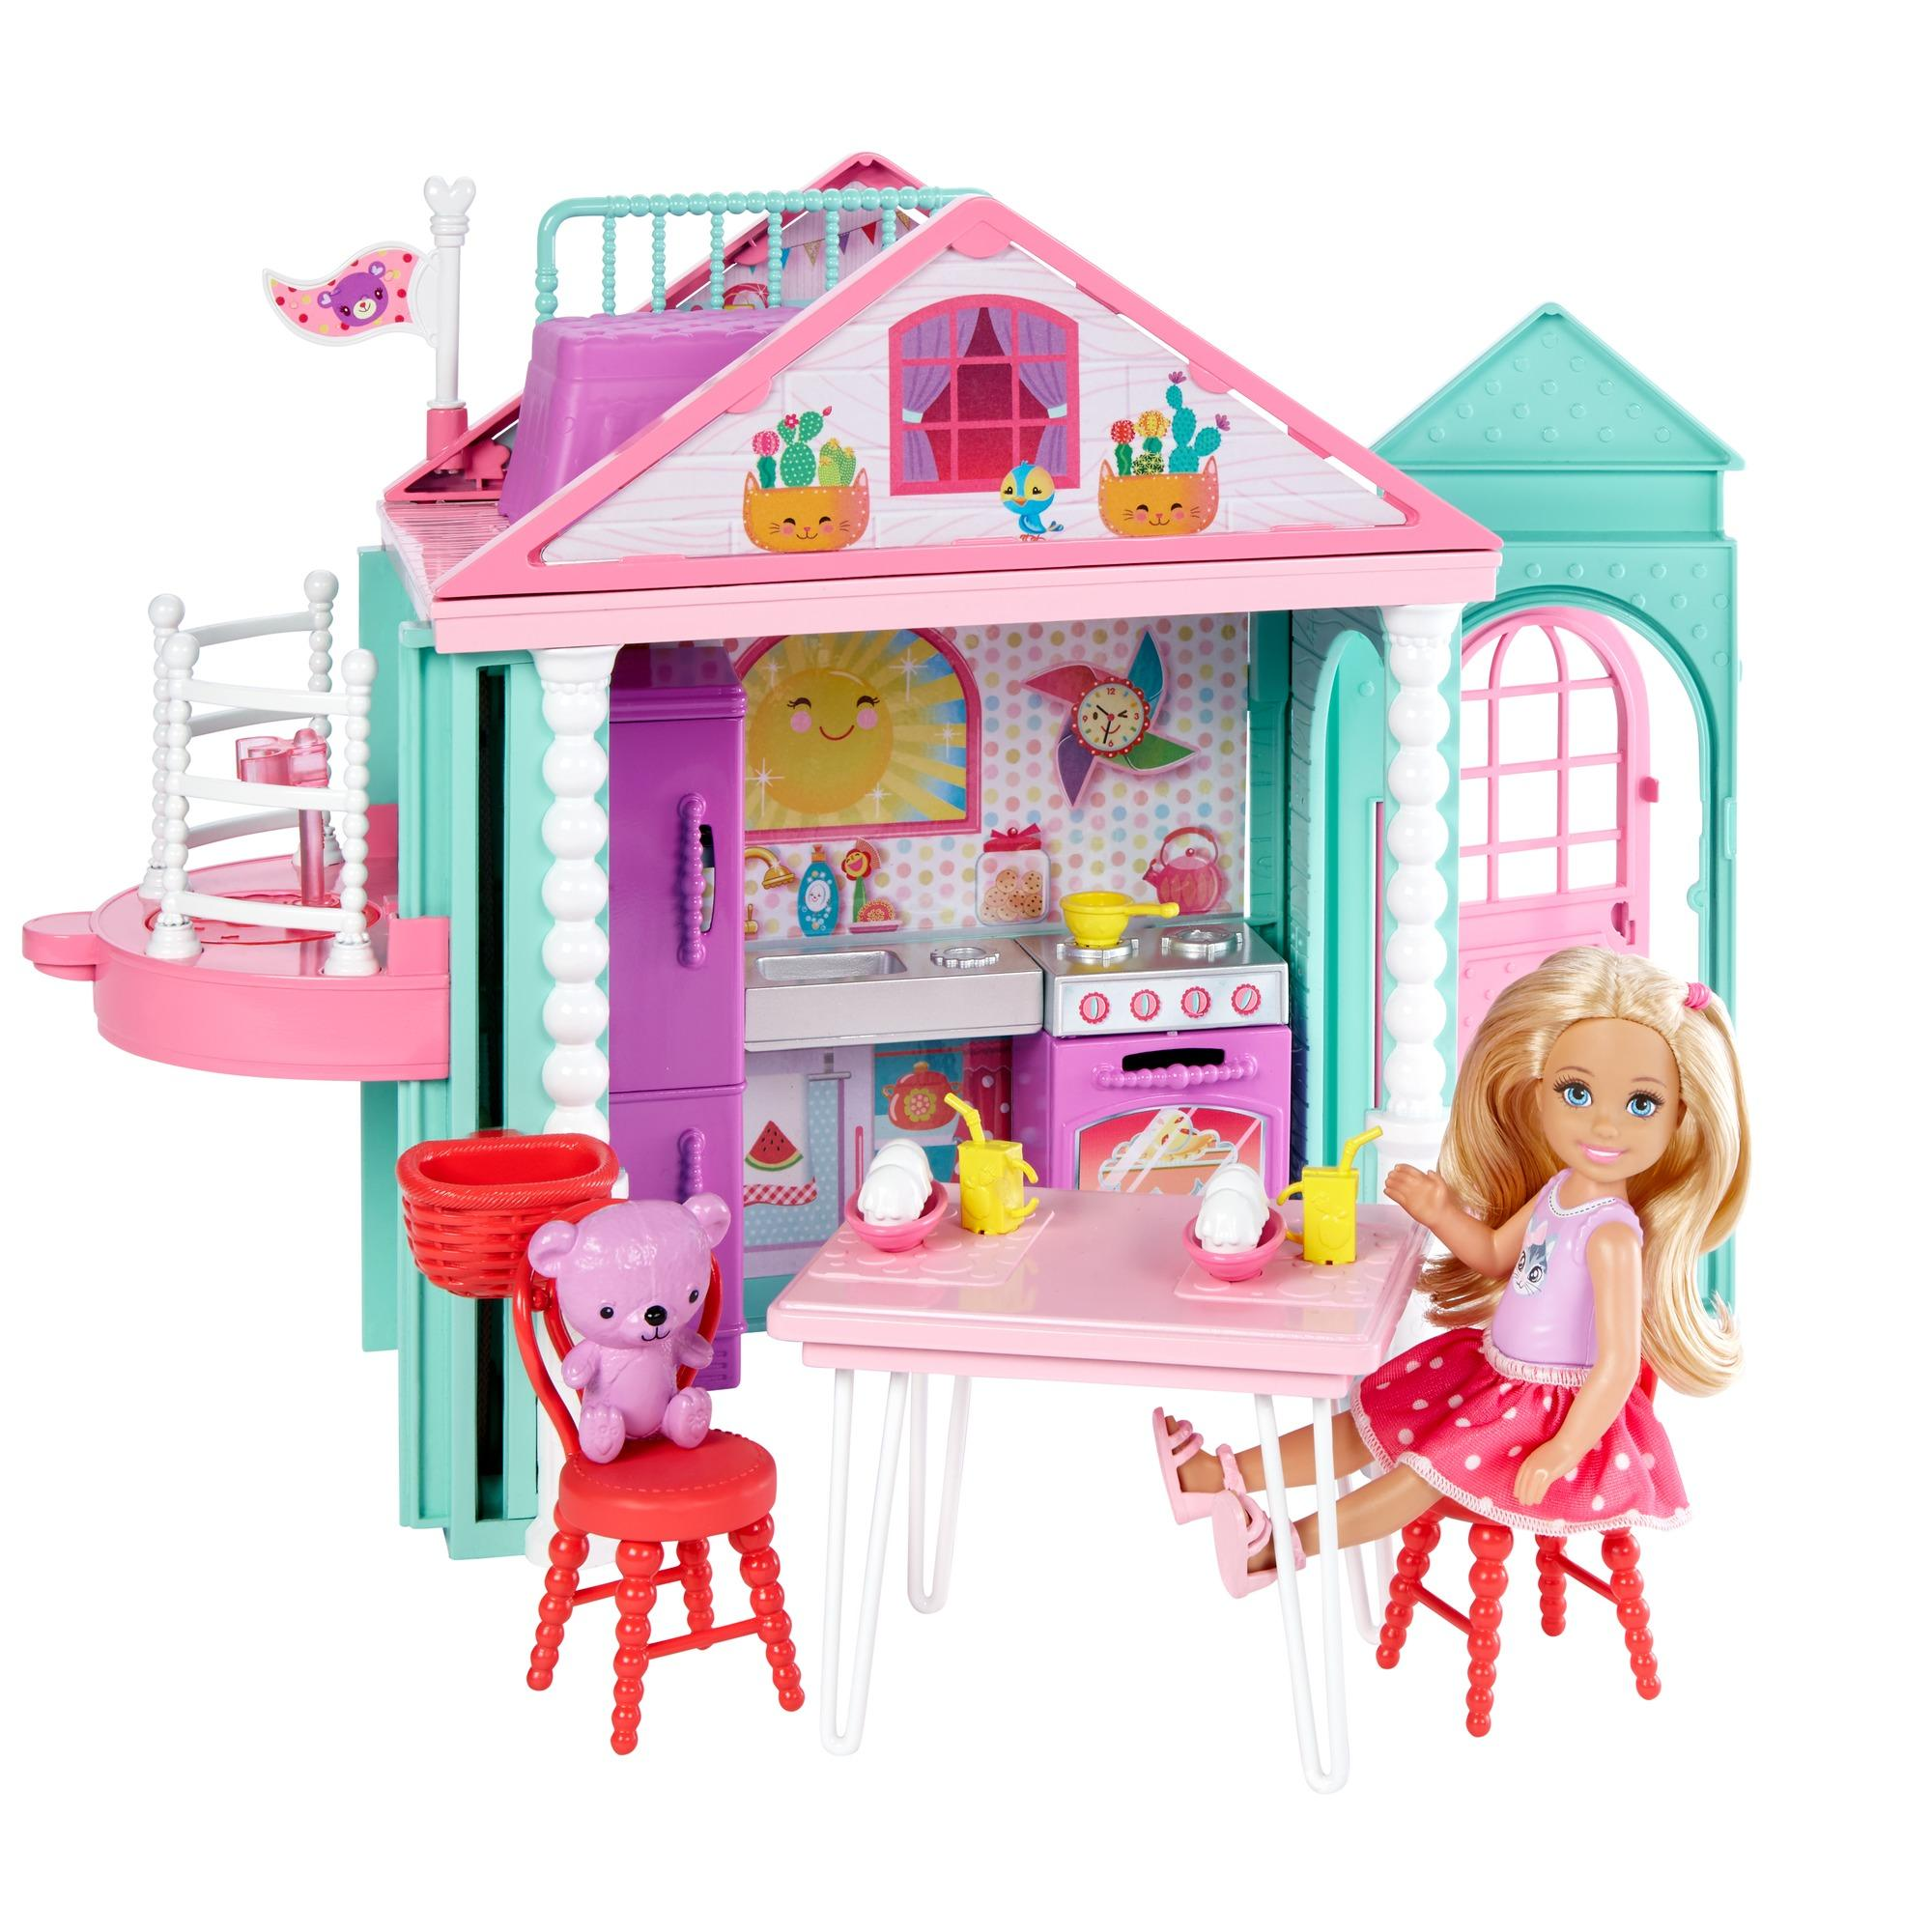 Barbie Club Chelsea Playhouse, 2-Story Dollhouse with Chelsea Doll by Mattel